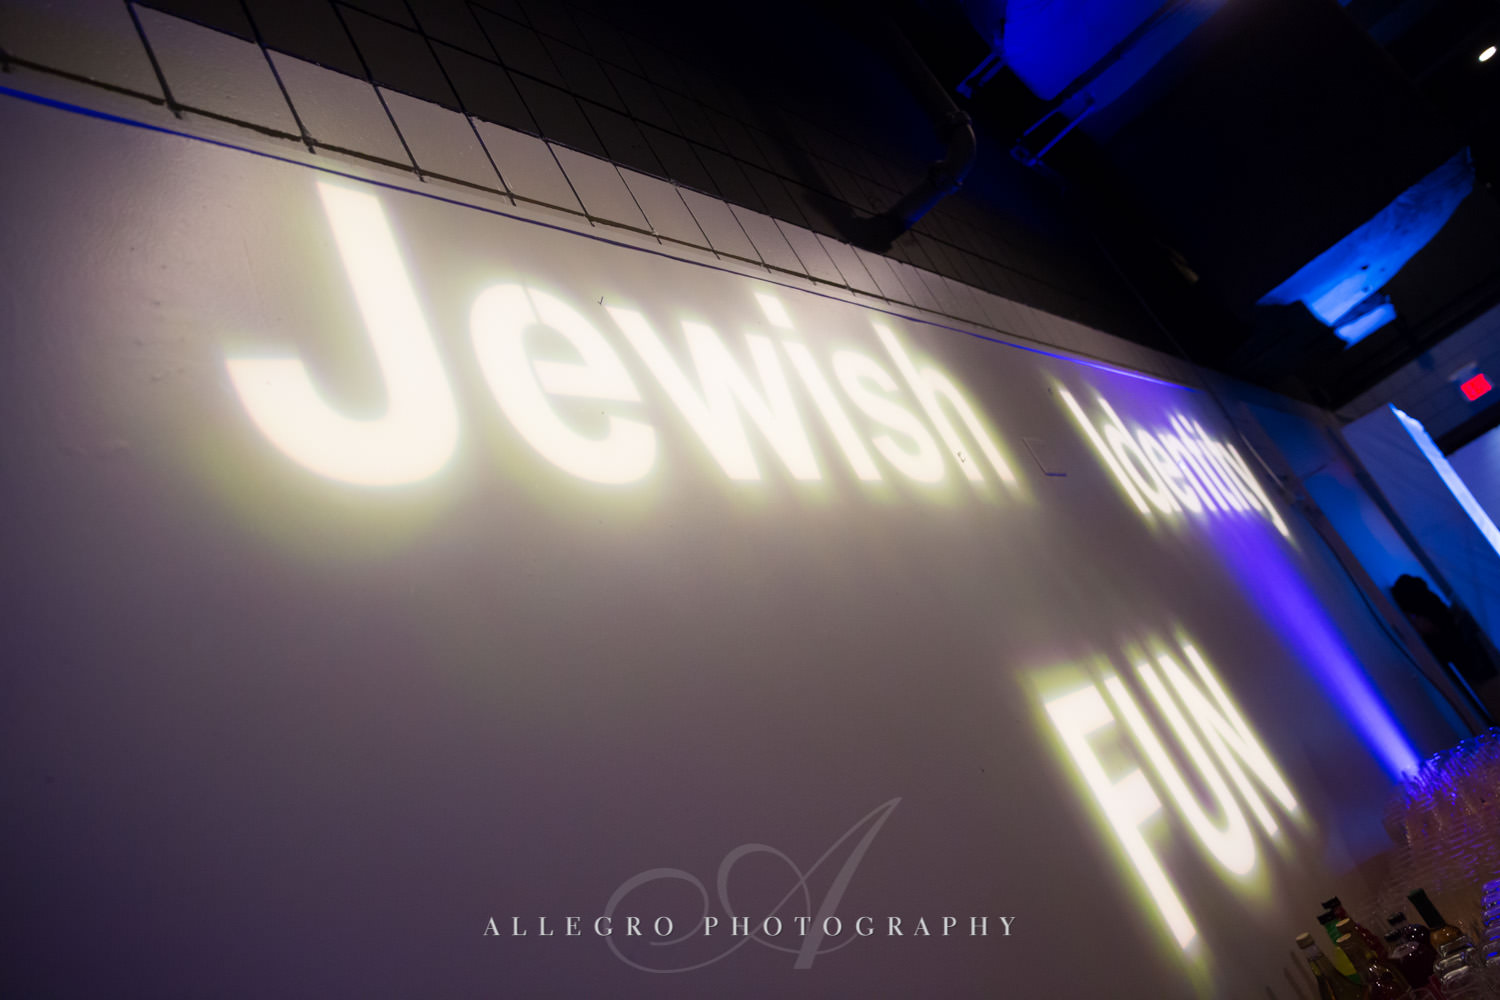 Projection decor at nonprofit event shot by Allegro Photography